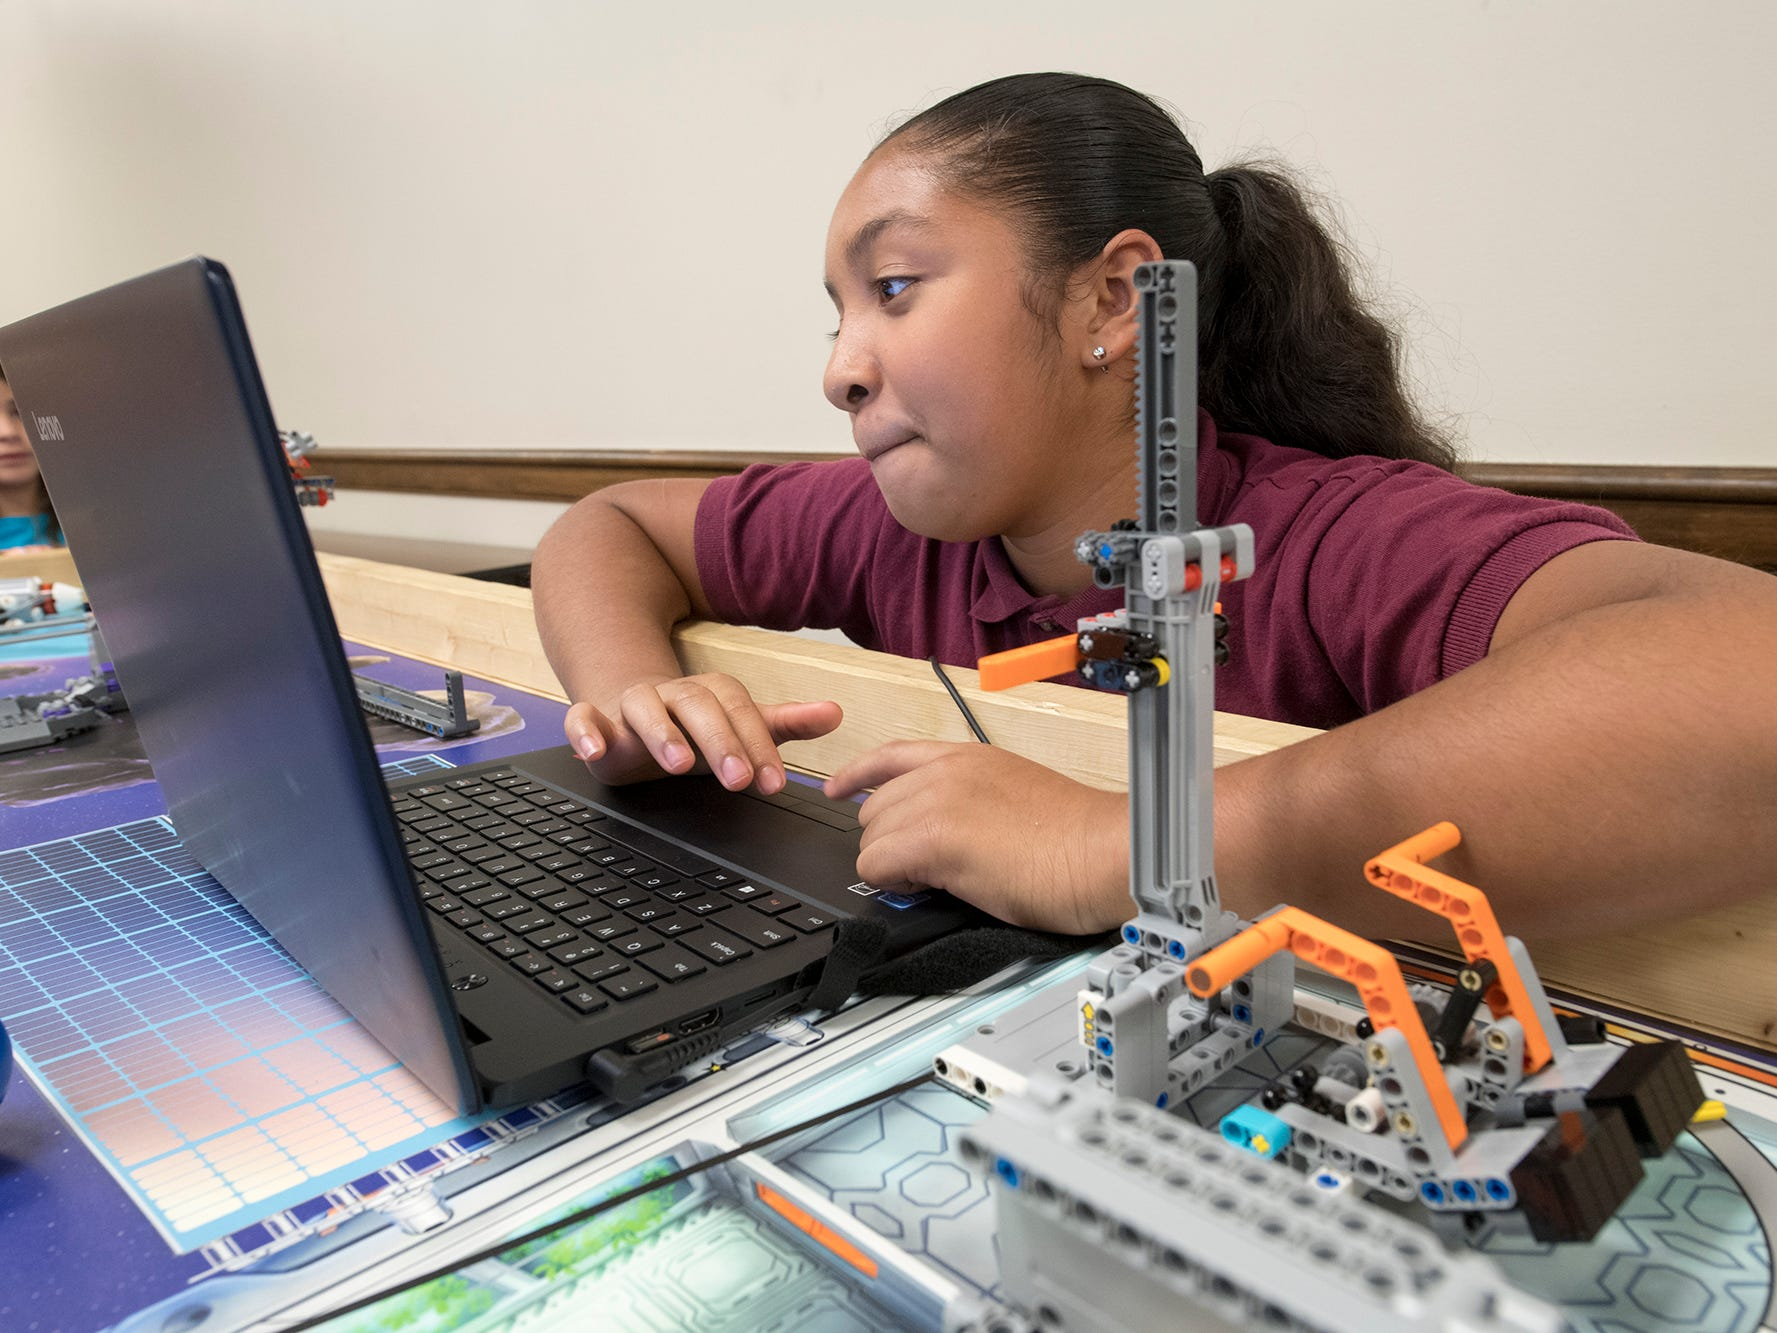 Naigè Kennedy programs a robot using a laptop during the Young Thinkers of York at Martin Library in York.